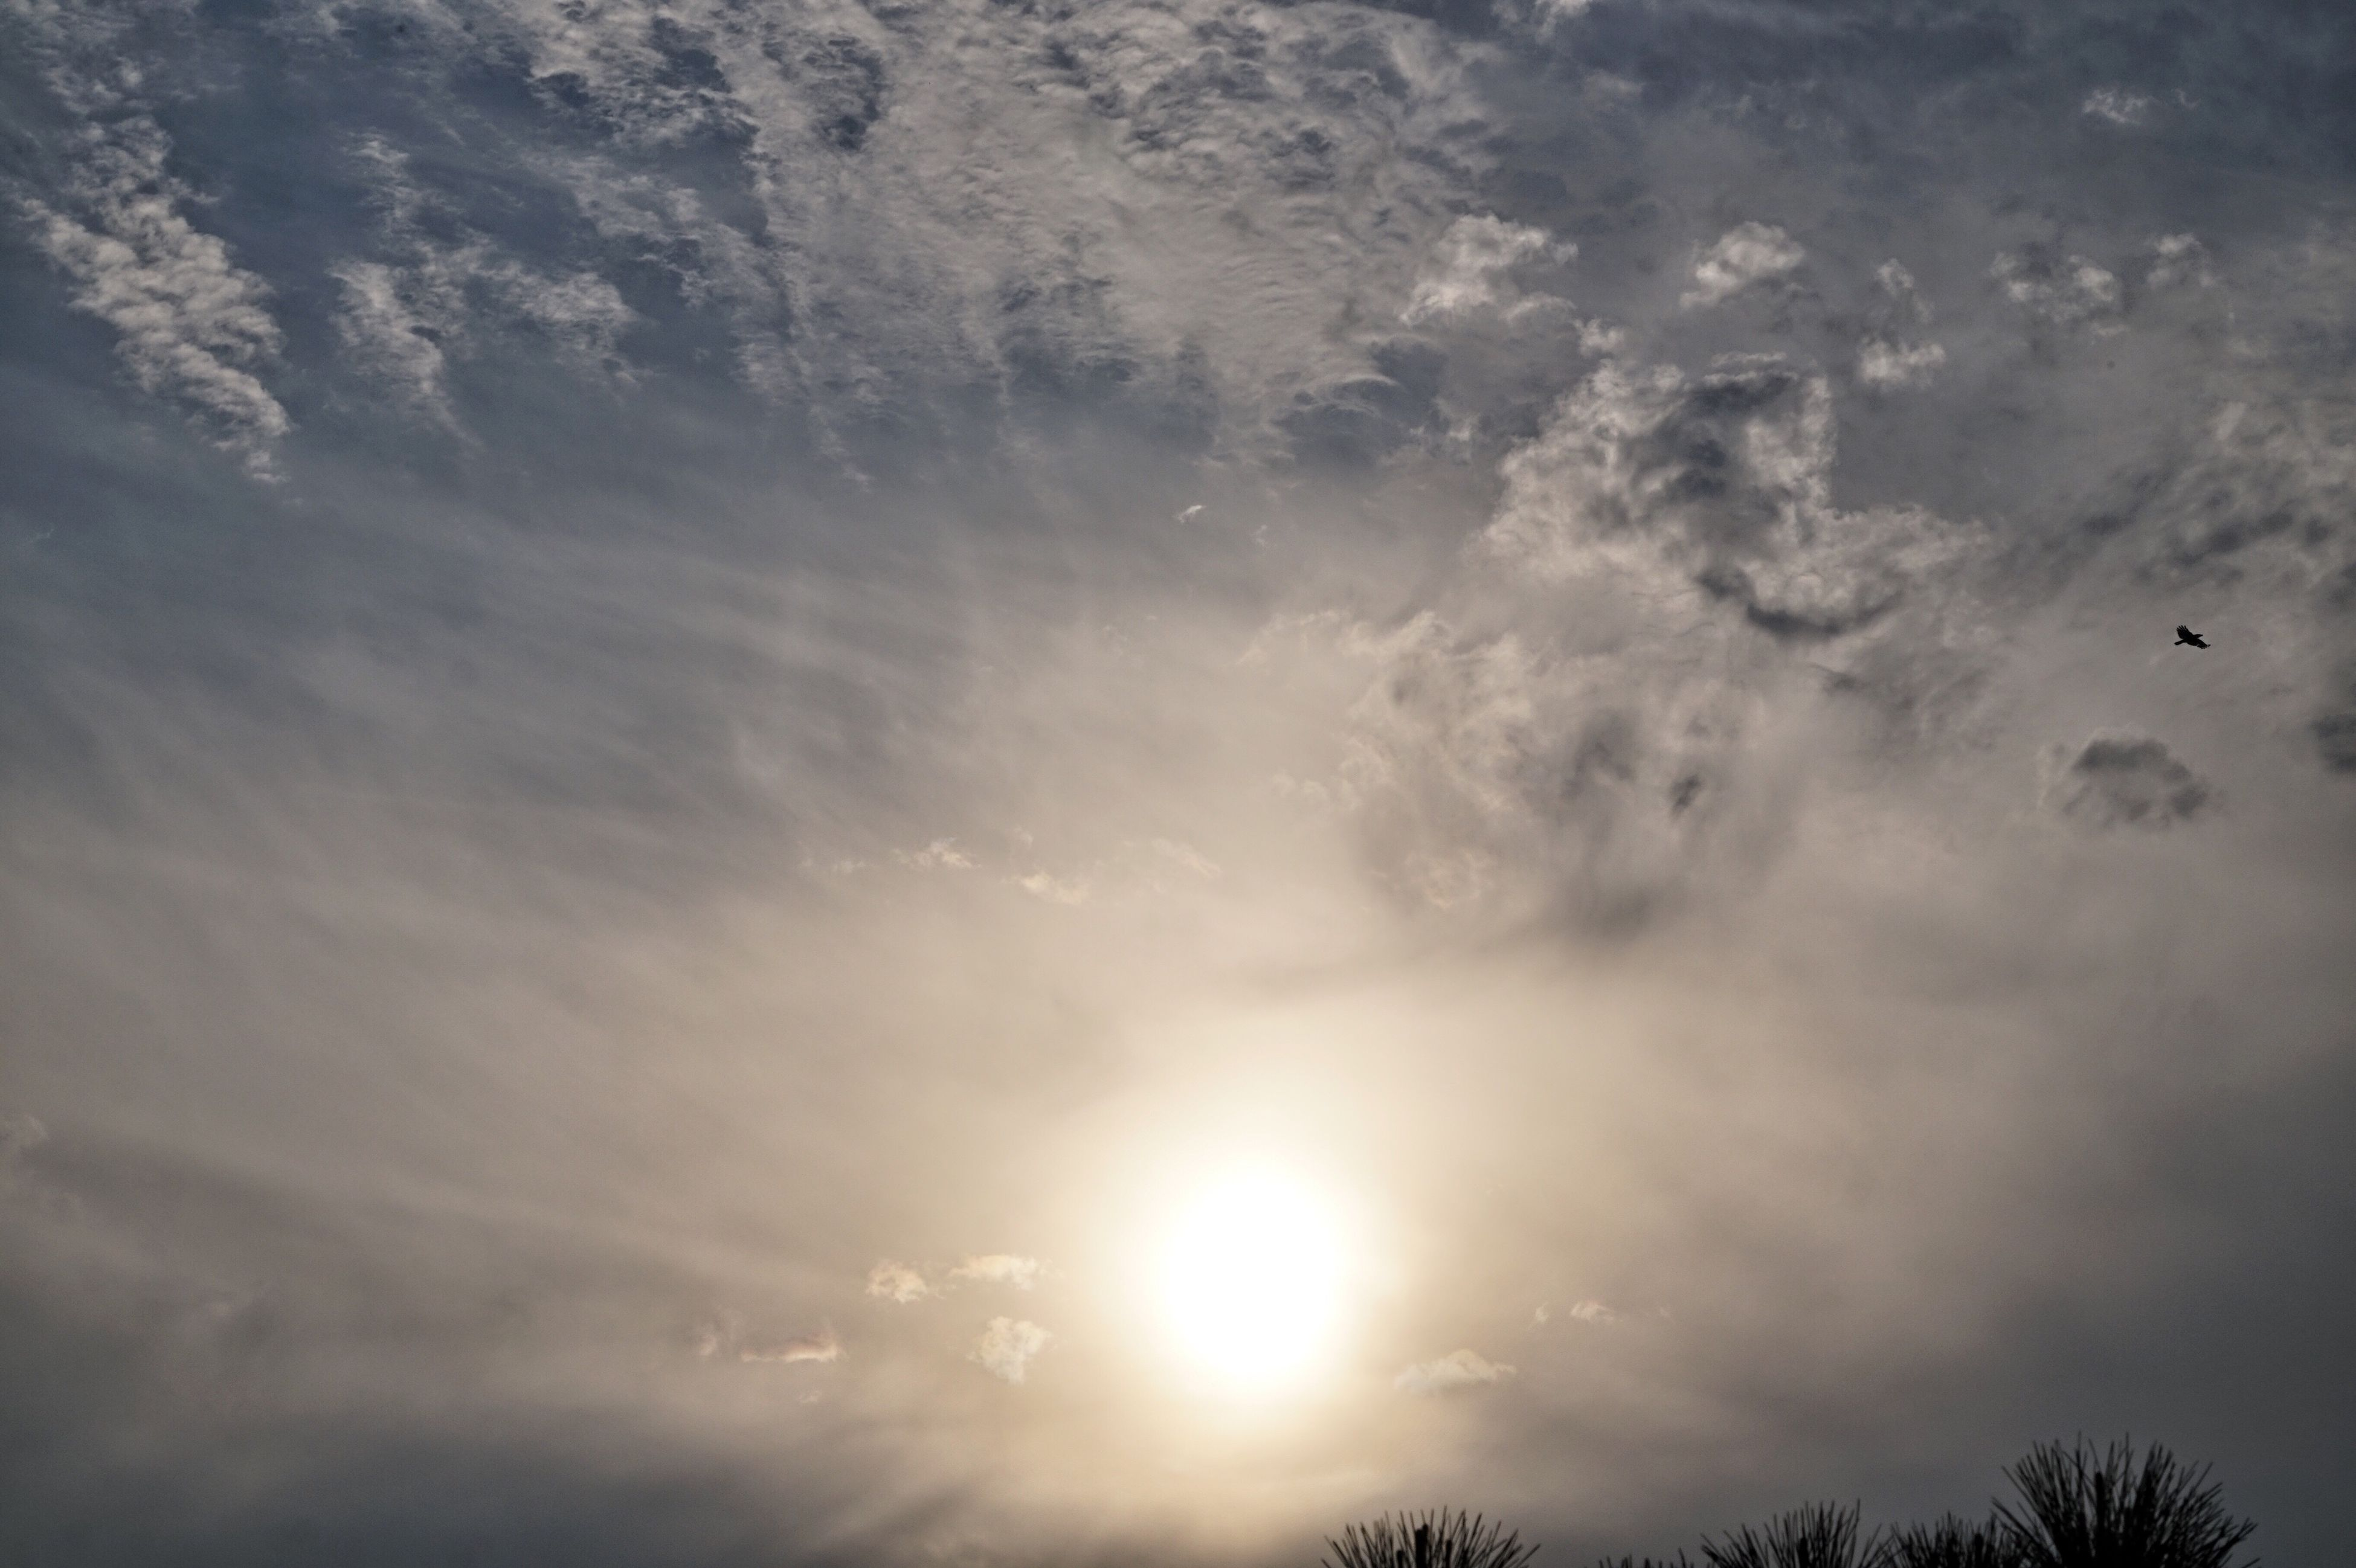 sky, sunlight, cloud - sky, low angle view, sun, nature, no people, sunset, outdoors, tranquility, beauty in nature, sunbeam, day